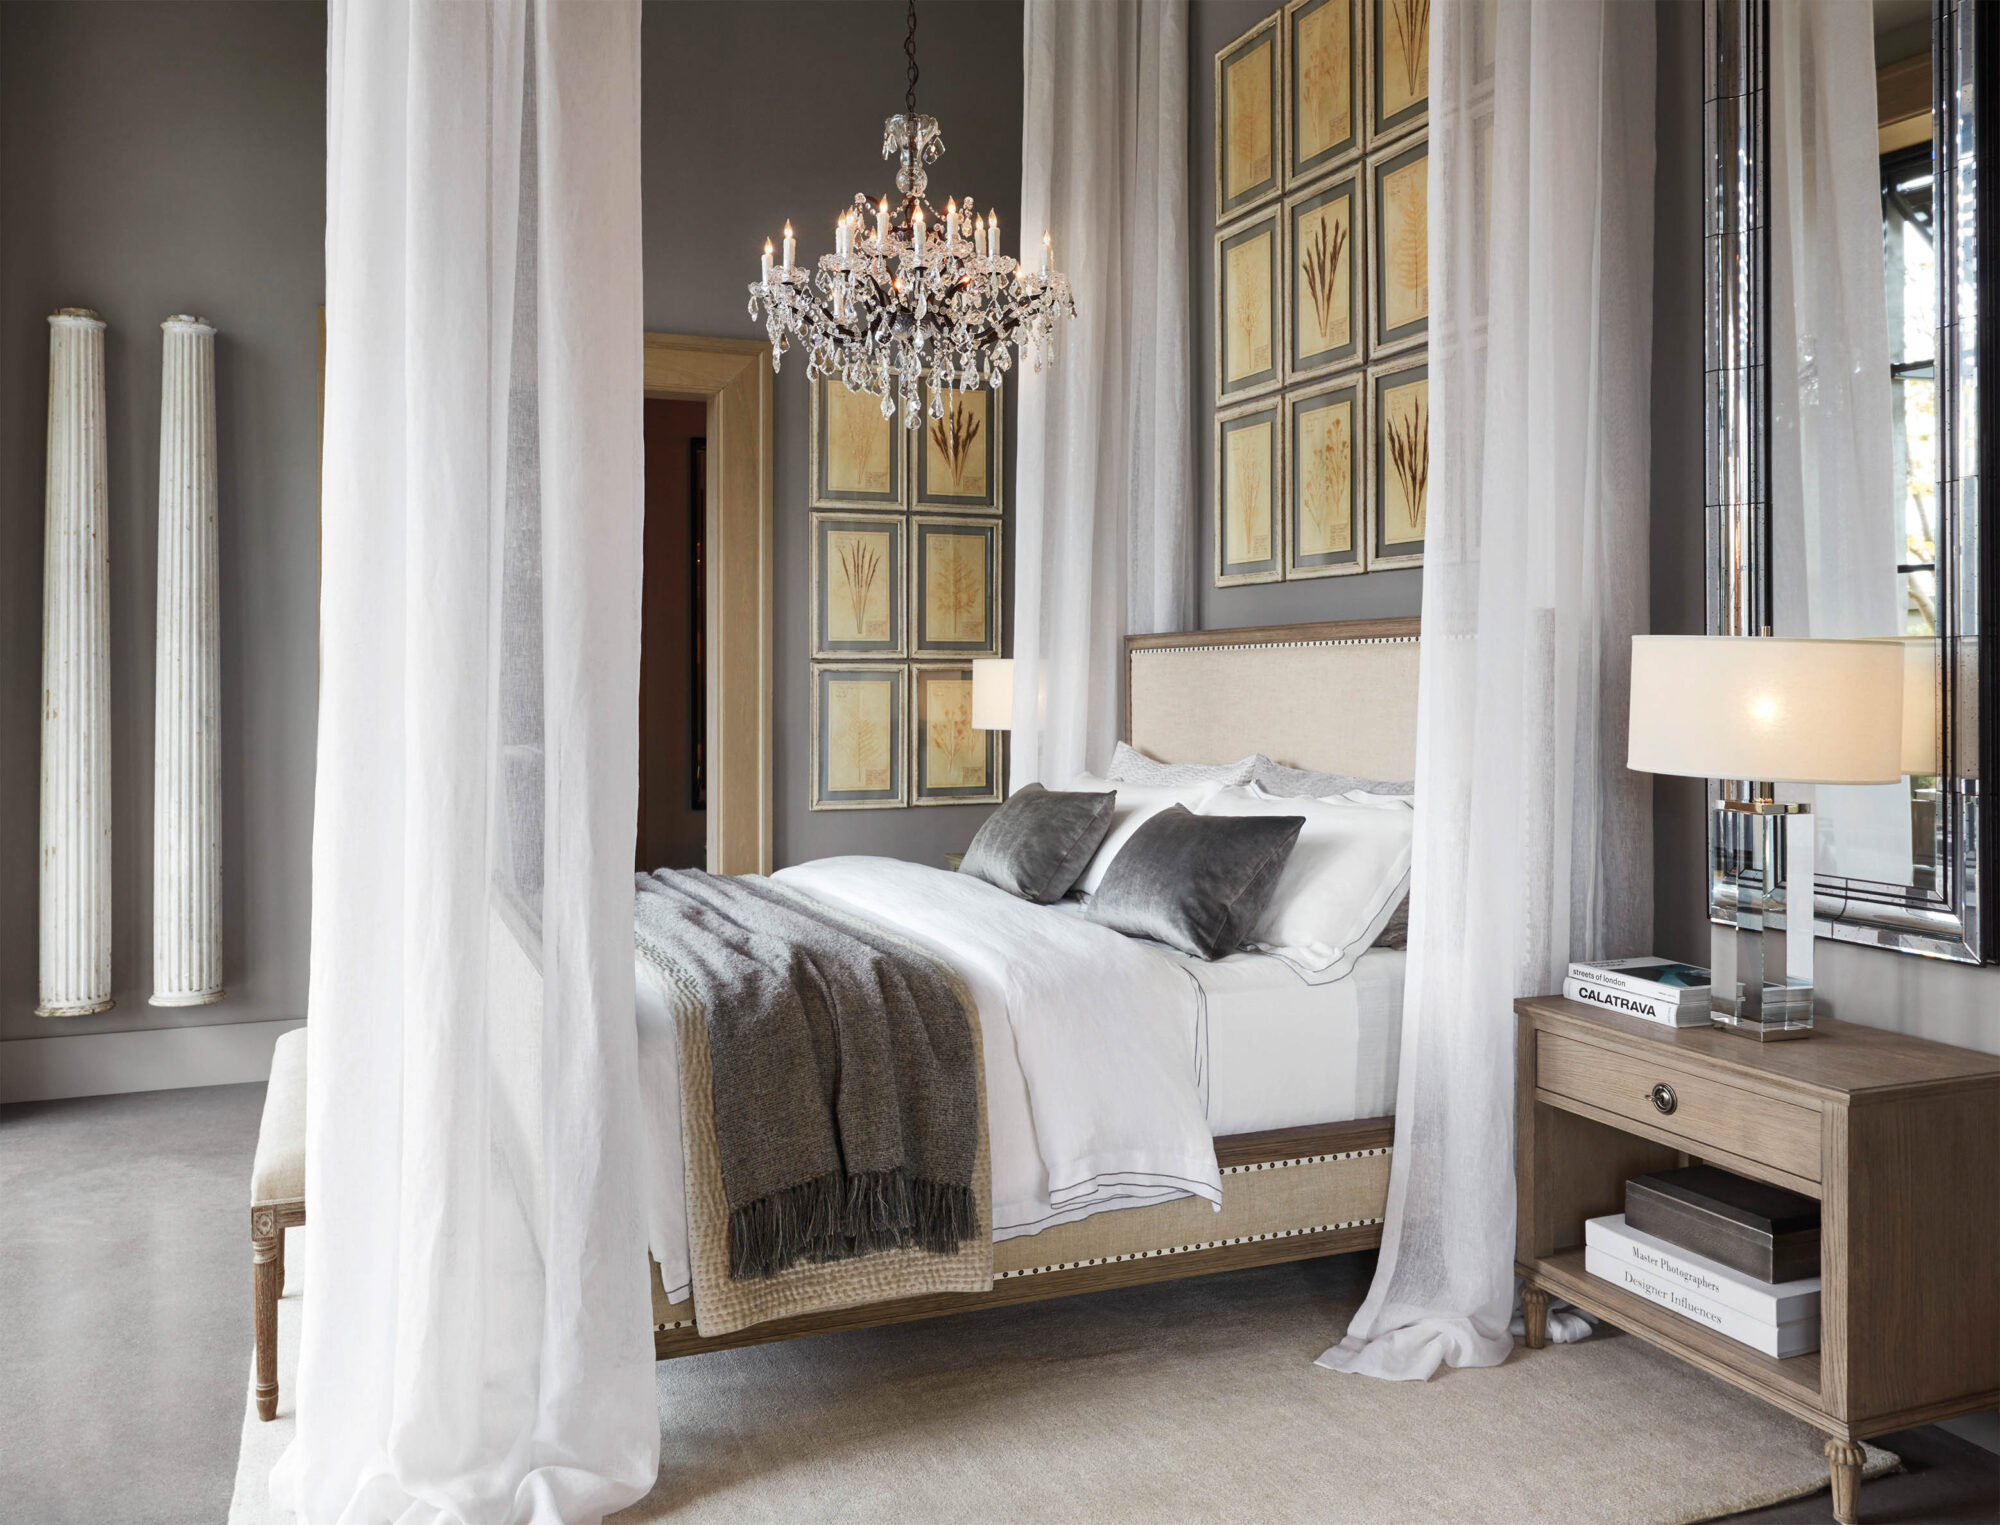 Sumptuous bed with crystal chandelier and panels surrounding it